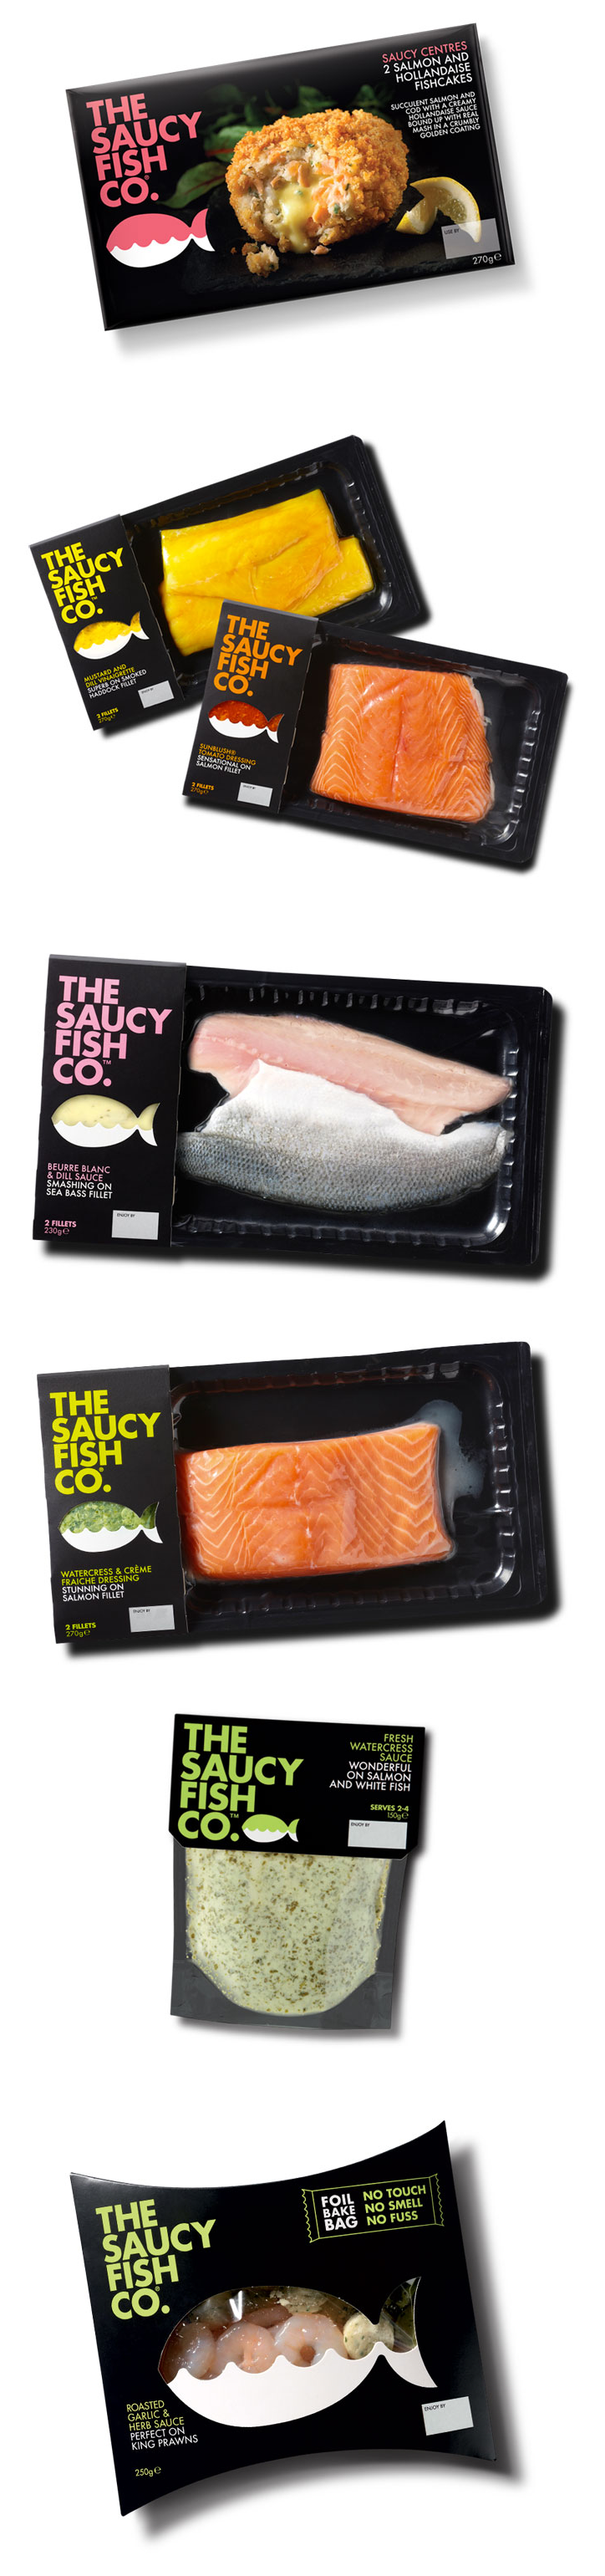 Designed by Elmwood The Saucy Fish Co. is proud to be the first brand to sign up to the Sustainable Seafood Coalition, which aims to improve product labelling and consumer protection. As a leading brand we are keen to ensure that our customers have access to responsibly sourced fish, as they trust us to do the right thing by actively engaging in making fisheries and fish farming more sustainable.""